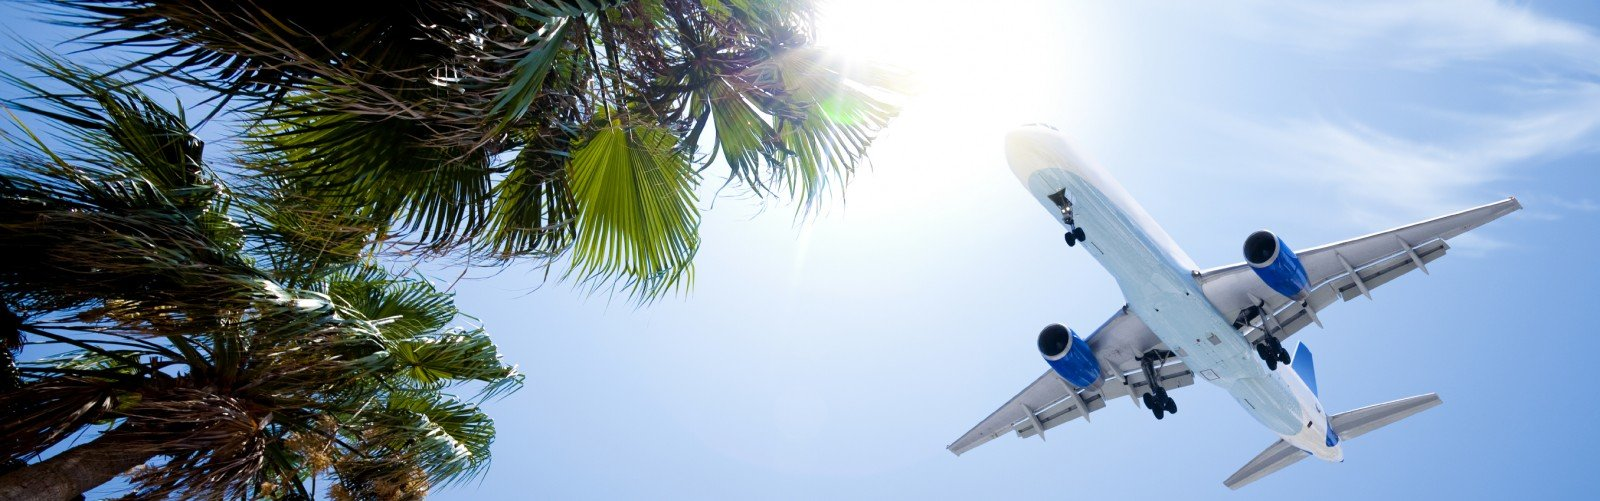 Airliner passing over tropic palm trees